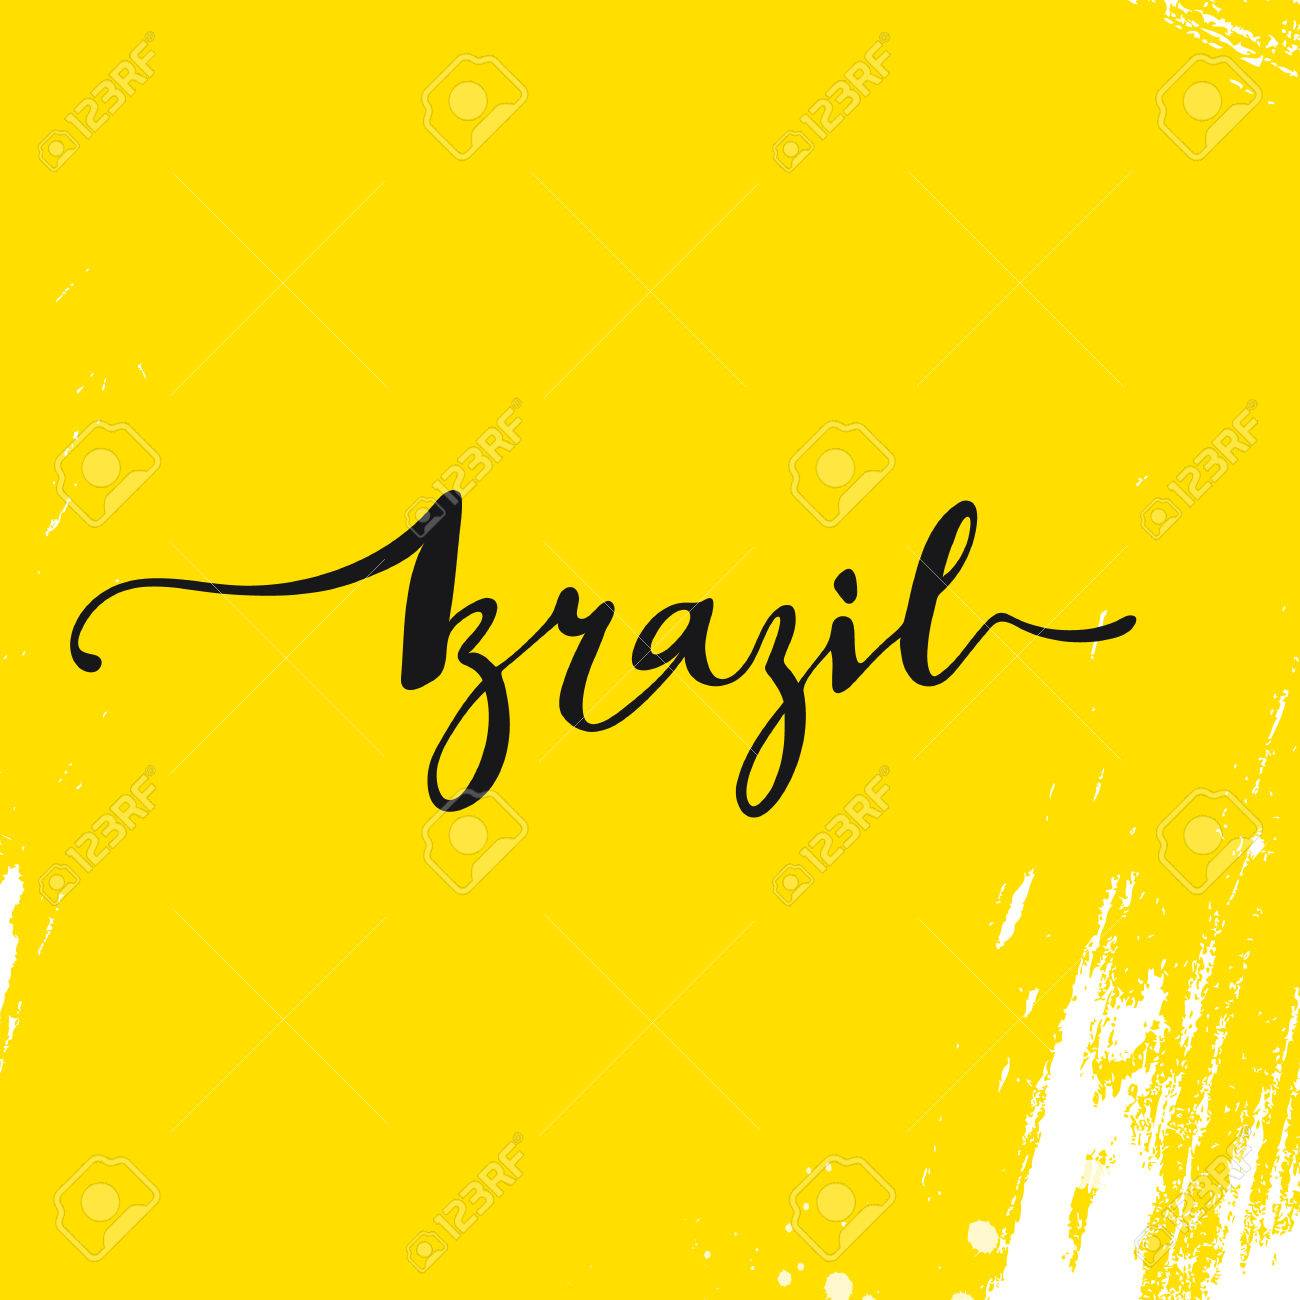 Handmade watercolor brazil flag brasil stock photos freeimages com - Inscription Brazil Background Yellow Calligraphy Handmade Greeting Cards Posters Phrase Brazil Background